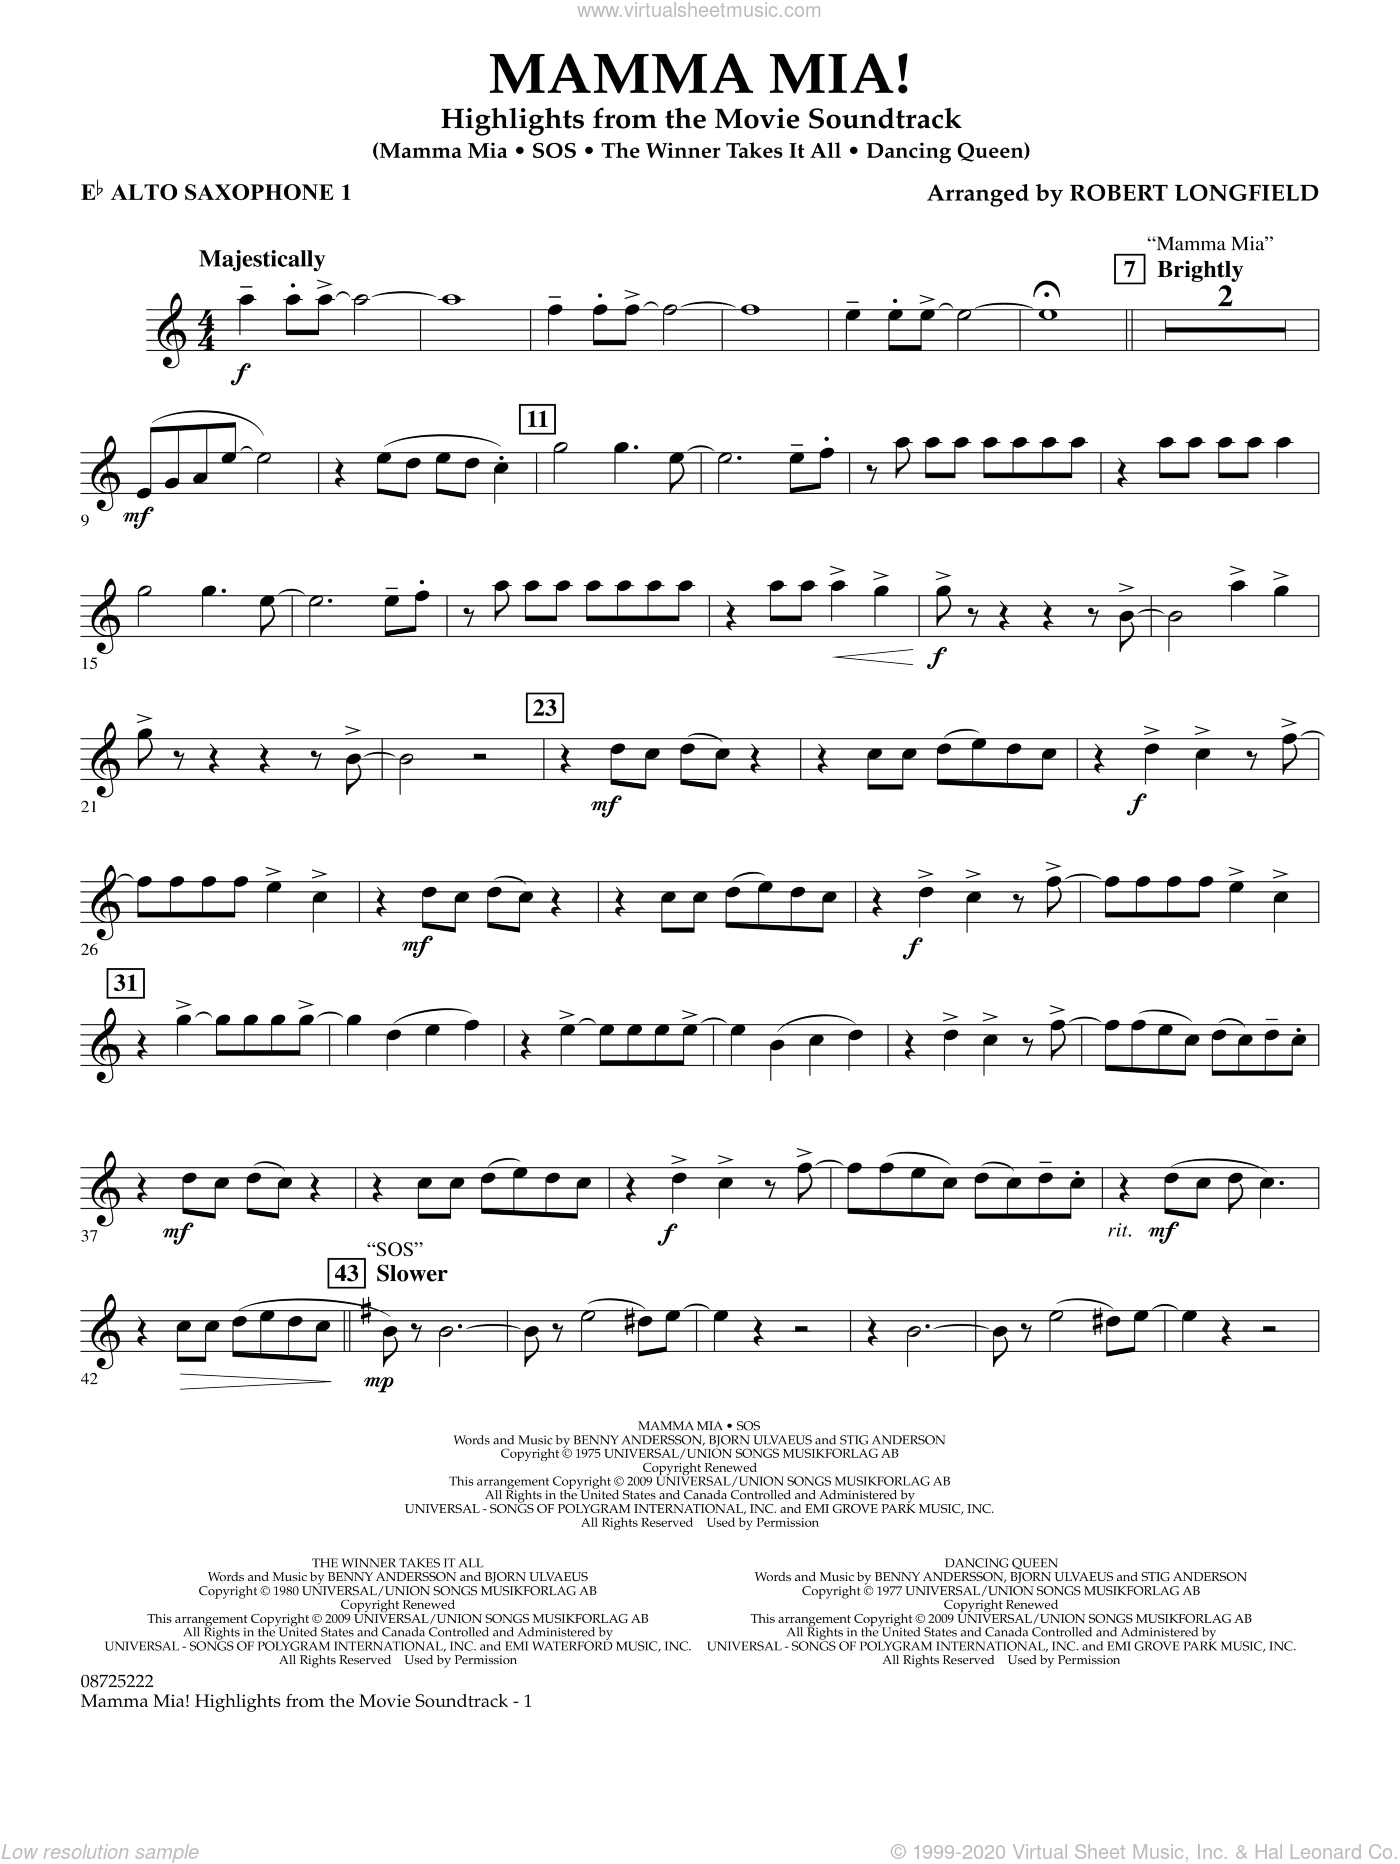 Mamma Mia!, highlights from the movie soundtrack sheet music for concert band (Eb alto saxophone 1) by ABBA and Robert Longfield, intermediate skill level